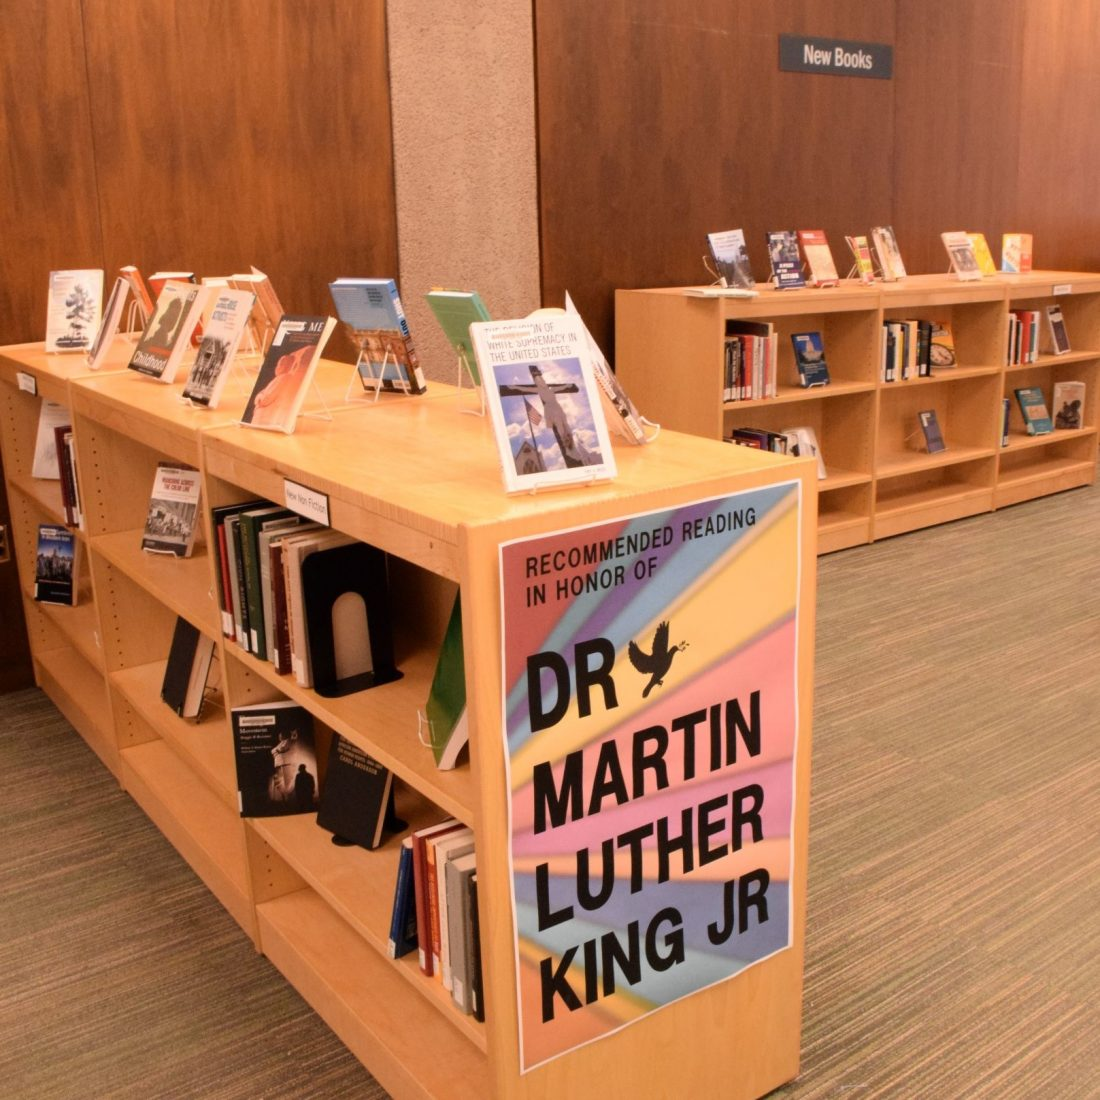 new book shelf area with books and poster on shelf that reads: Recommended Reading in Honor of Dr. Martin Luther King Jr.